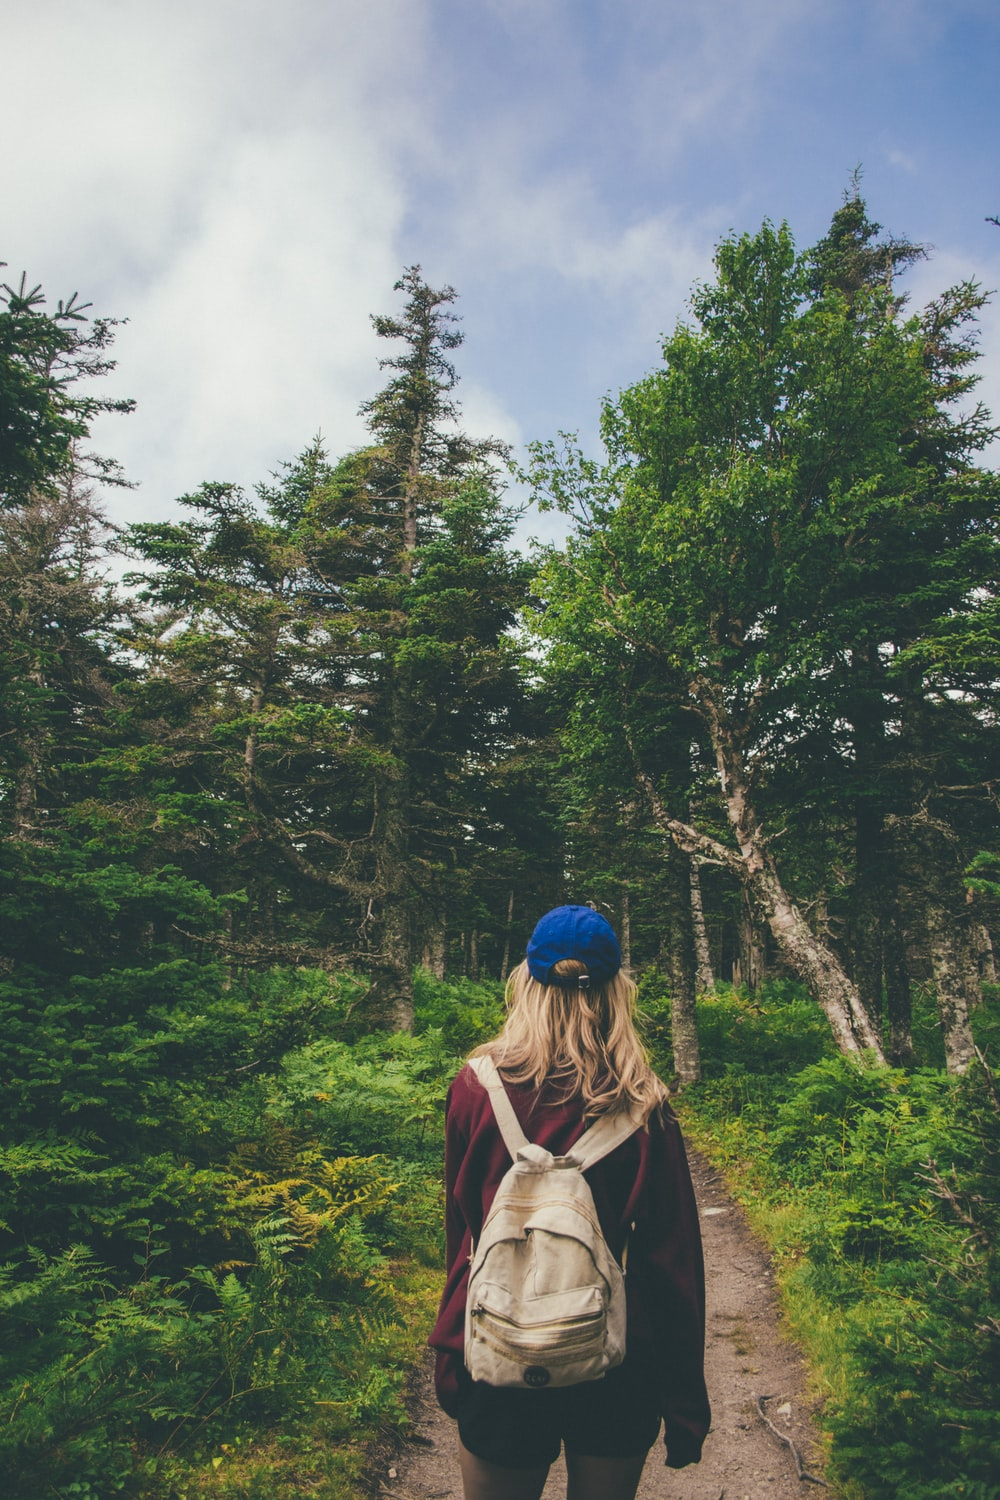 woman with backpack standing on walkway between trees and plants